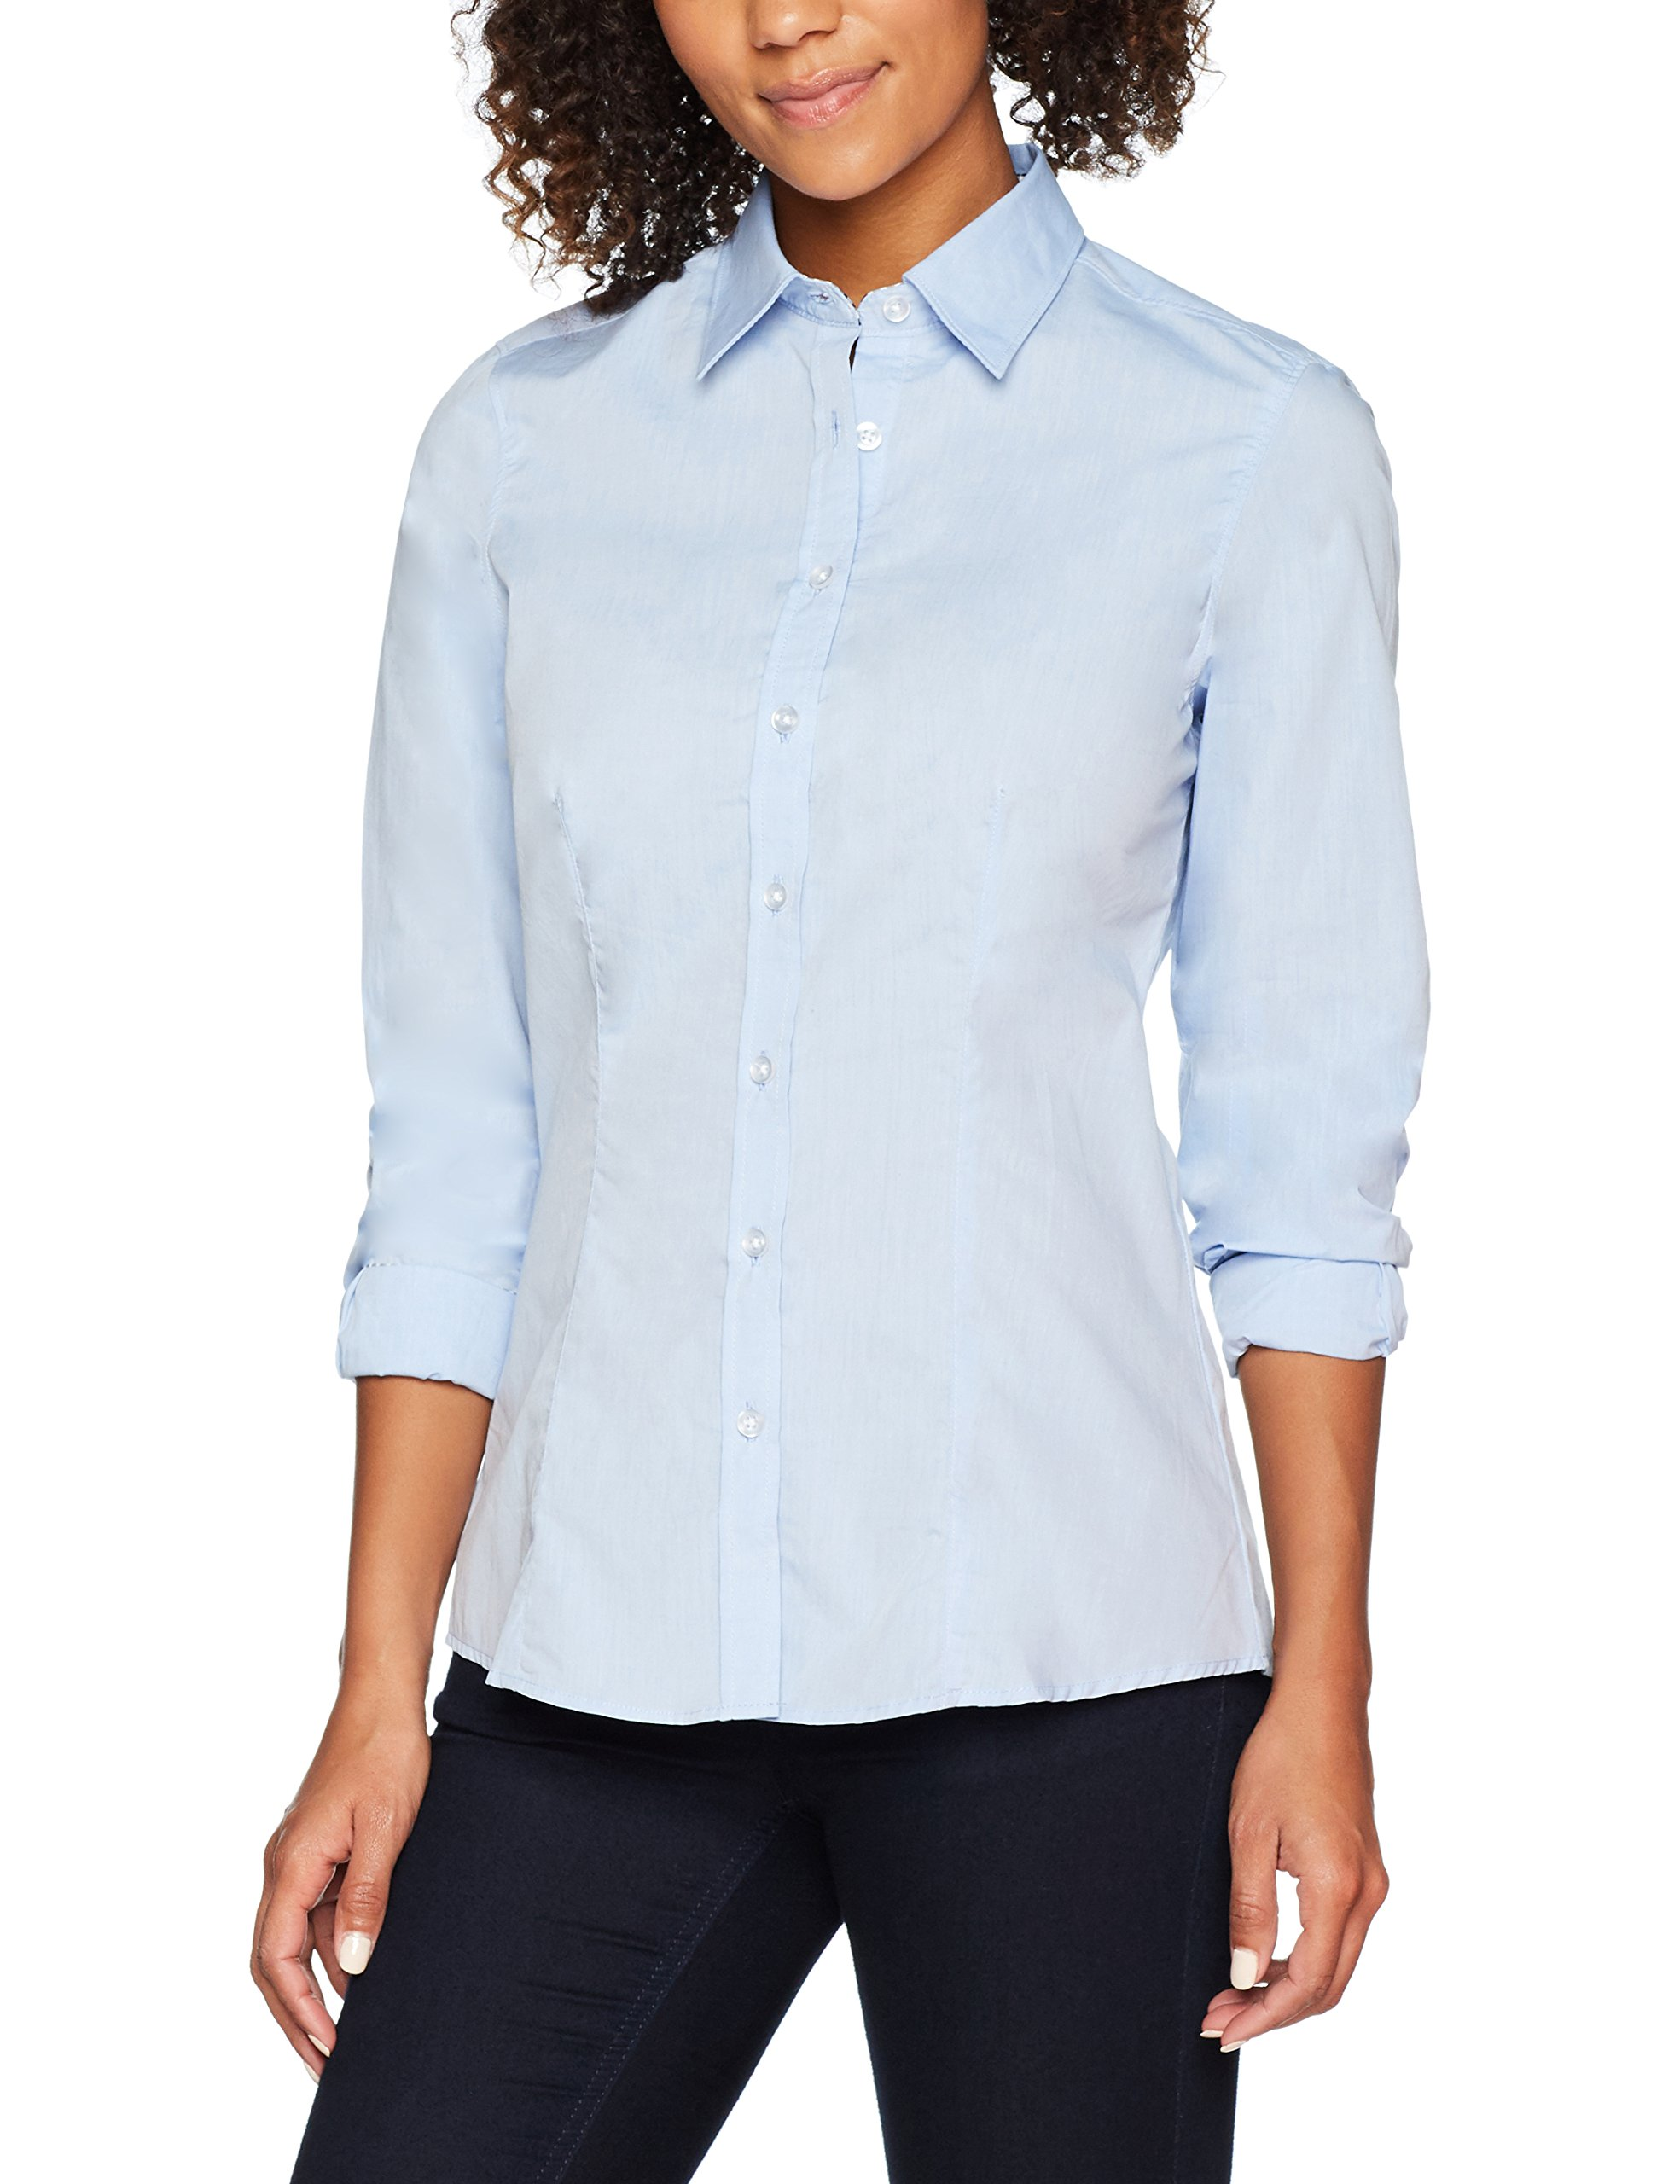 white40taille Plain Jamesamp; FabricantLargeFemme Ladies' Light Nicholson Shirt navy Du blue BlouseBleu HWE92ID